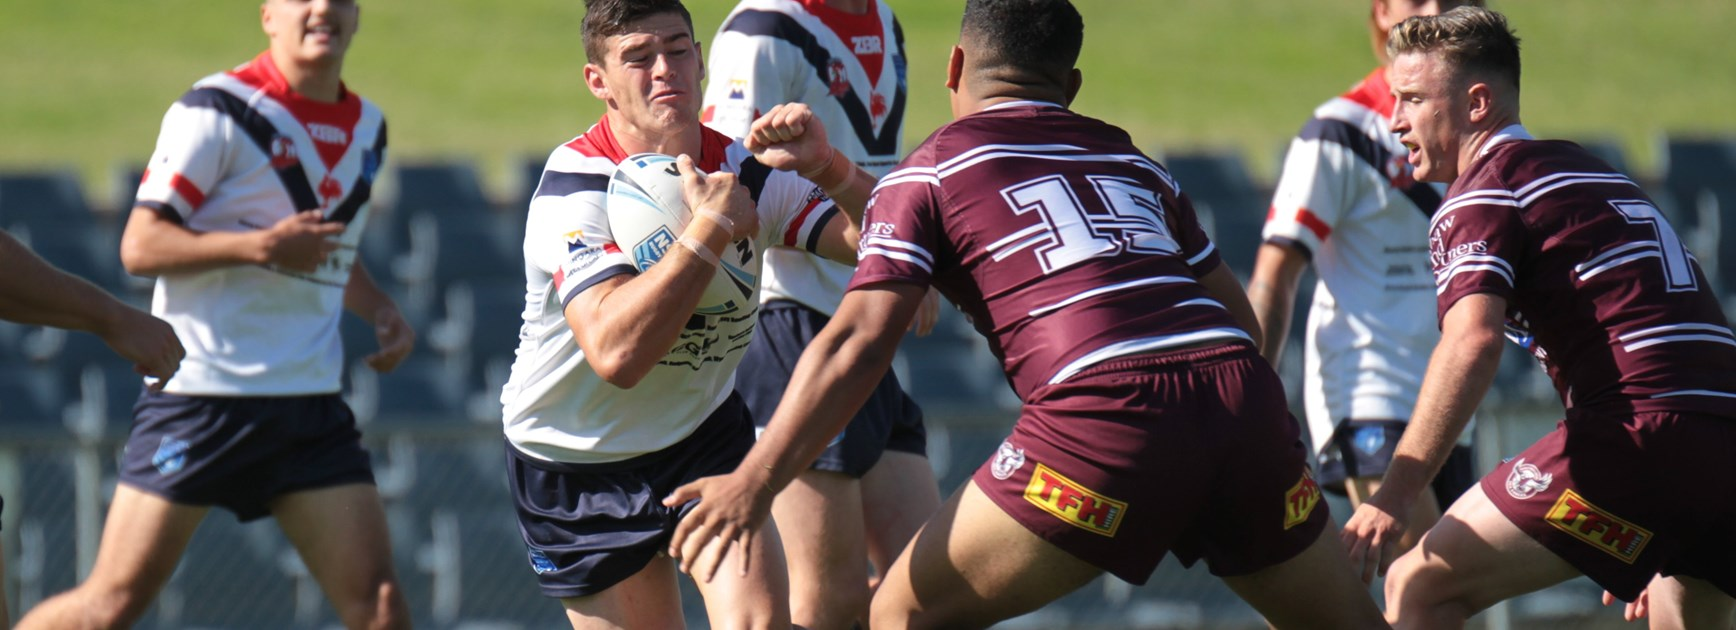 2019 SG Ball Finals Week 3 - Manly Warringah Sea Eagles v Central Coast Roosters. Photo: Steve Montgomery